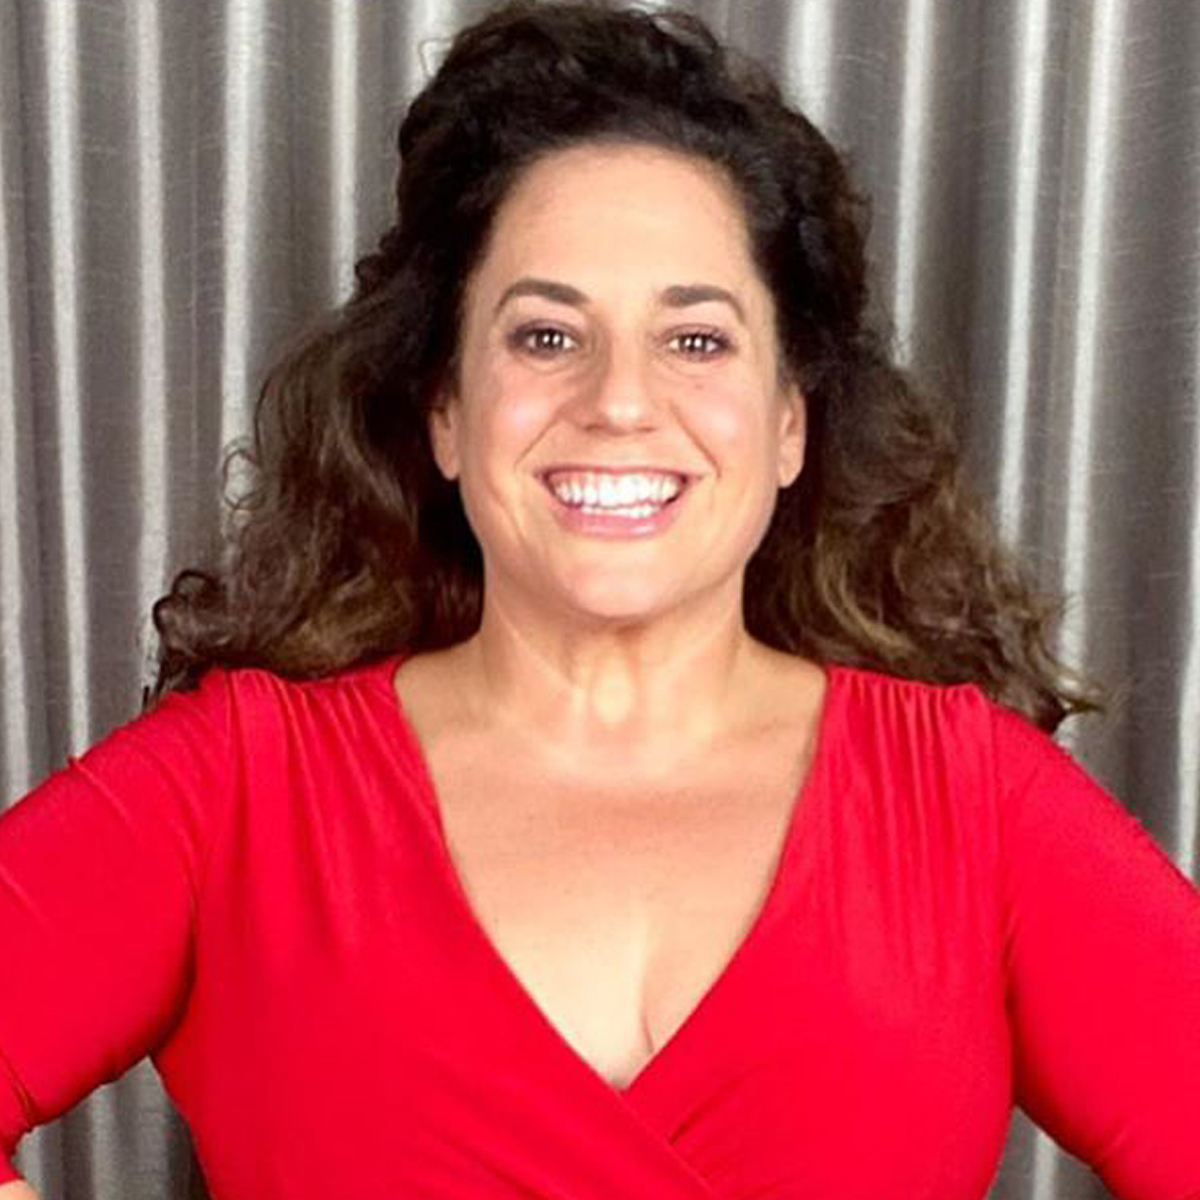 Marissa Jaret Winokur Debuts 50-Pound Weight Loss in Before-and-After Photos